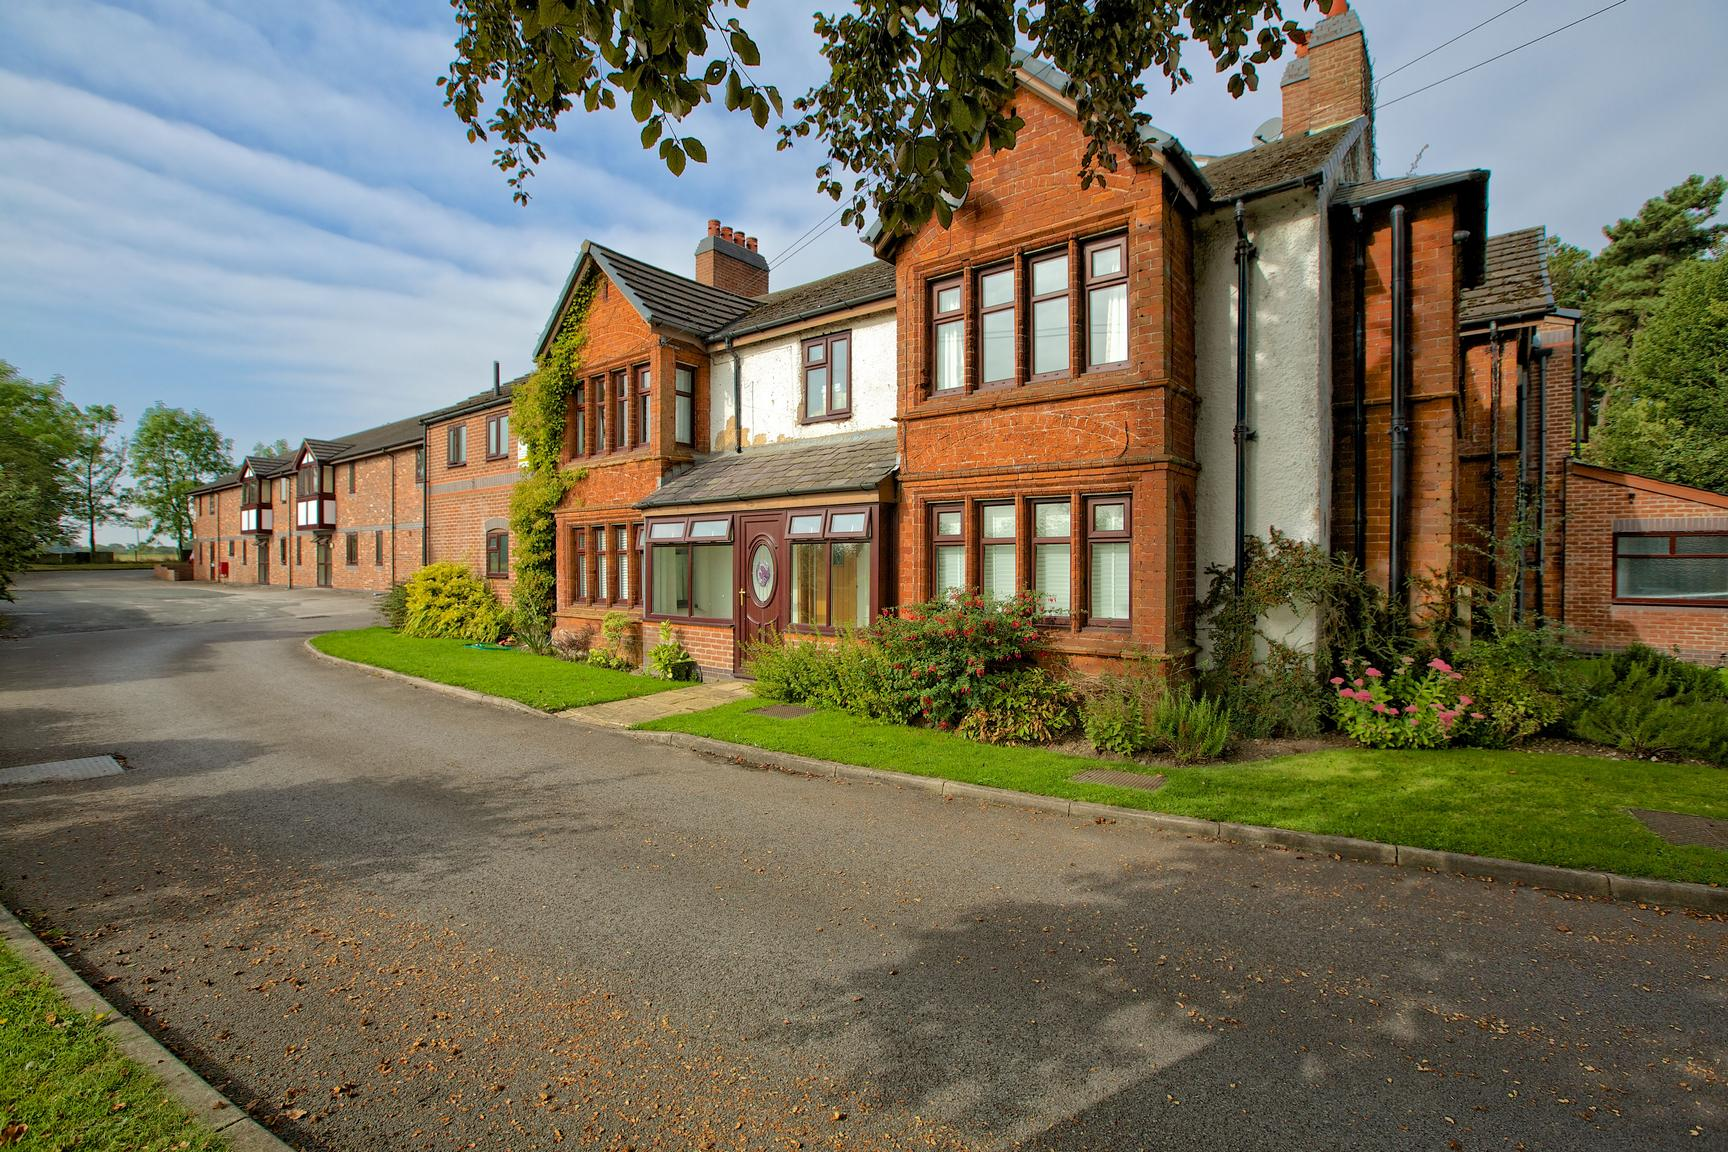 Bucklow Manor Nursing Home Cheshire Springcare Ltd